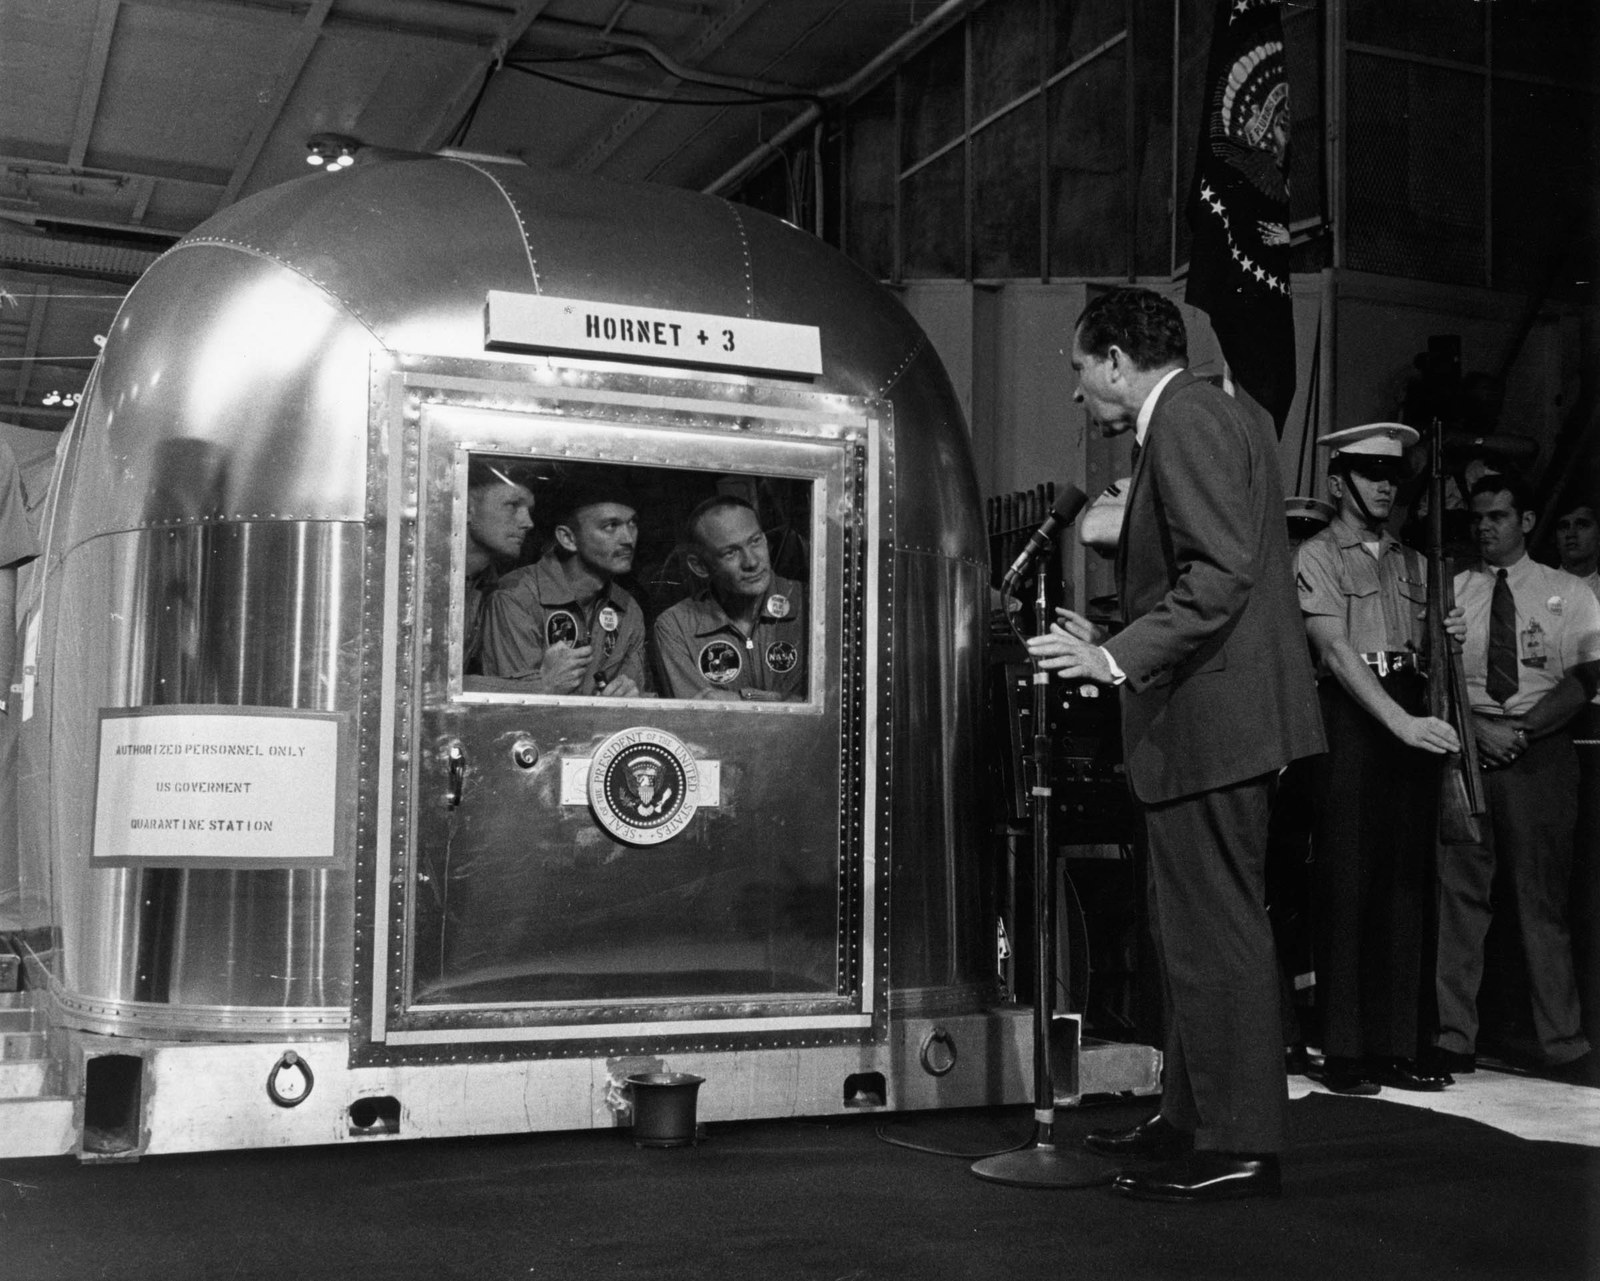 1969 President Richard M Nixon addresses astronauts (from left) Neil Armstrong, Michael Collins, and Buzz Aldrin, in their mobile quarantine facility aboard the USS Hornet. The astronauts were recovered from the Pacific Ocean on July 24 near Hawaii, after the first successful manned space flight to the moon. They will remain in quarantine for three weeks.